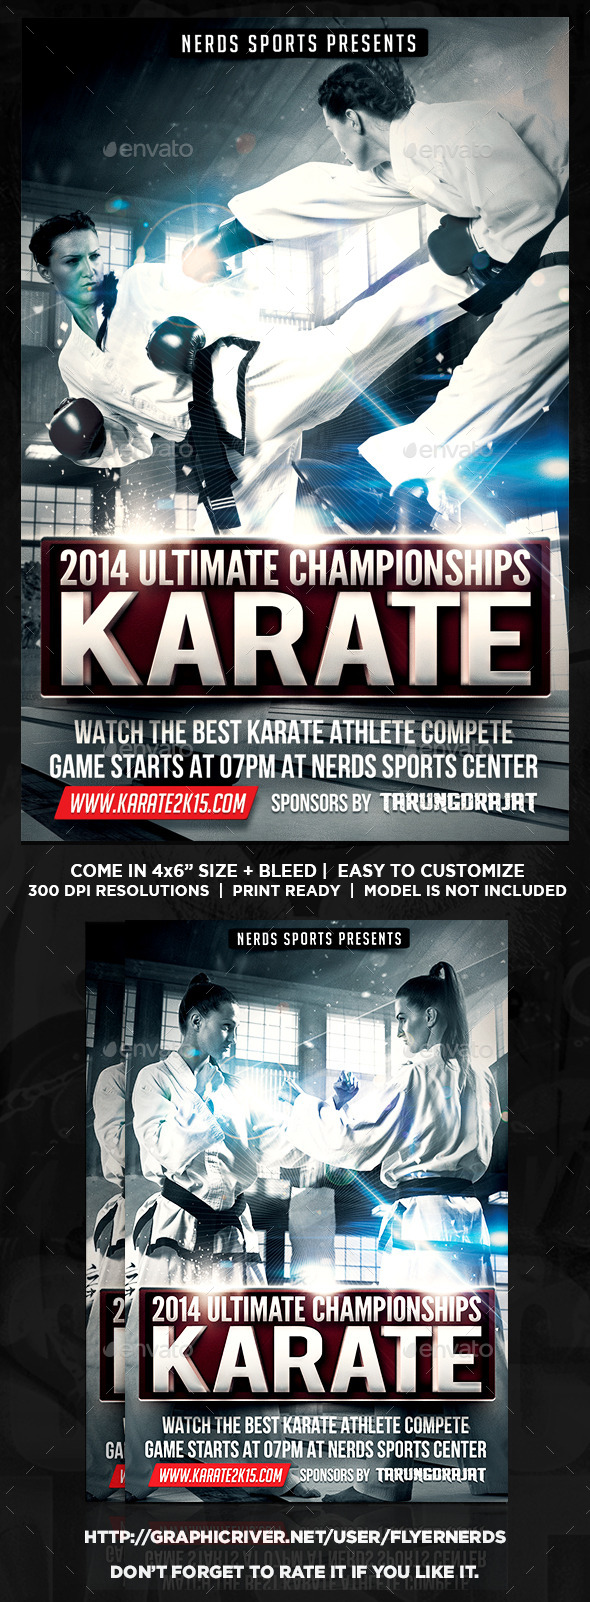 Karate Fighting Championships Sports Flyer - Sports Events